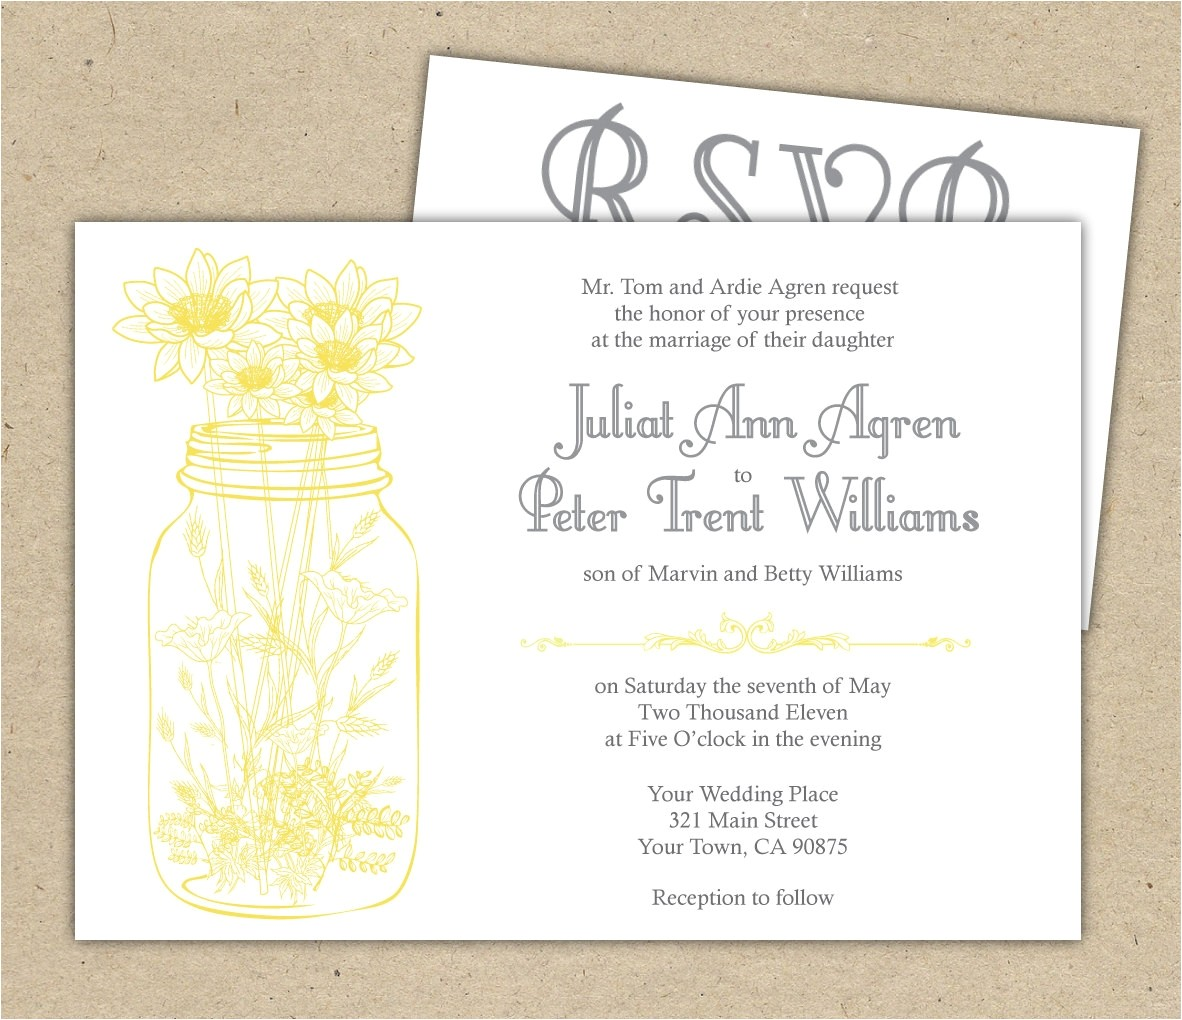 wedding invitation rsvp wording 2